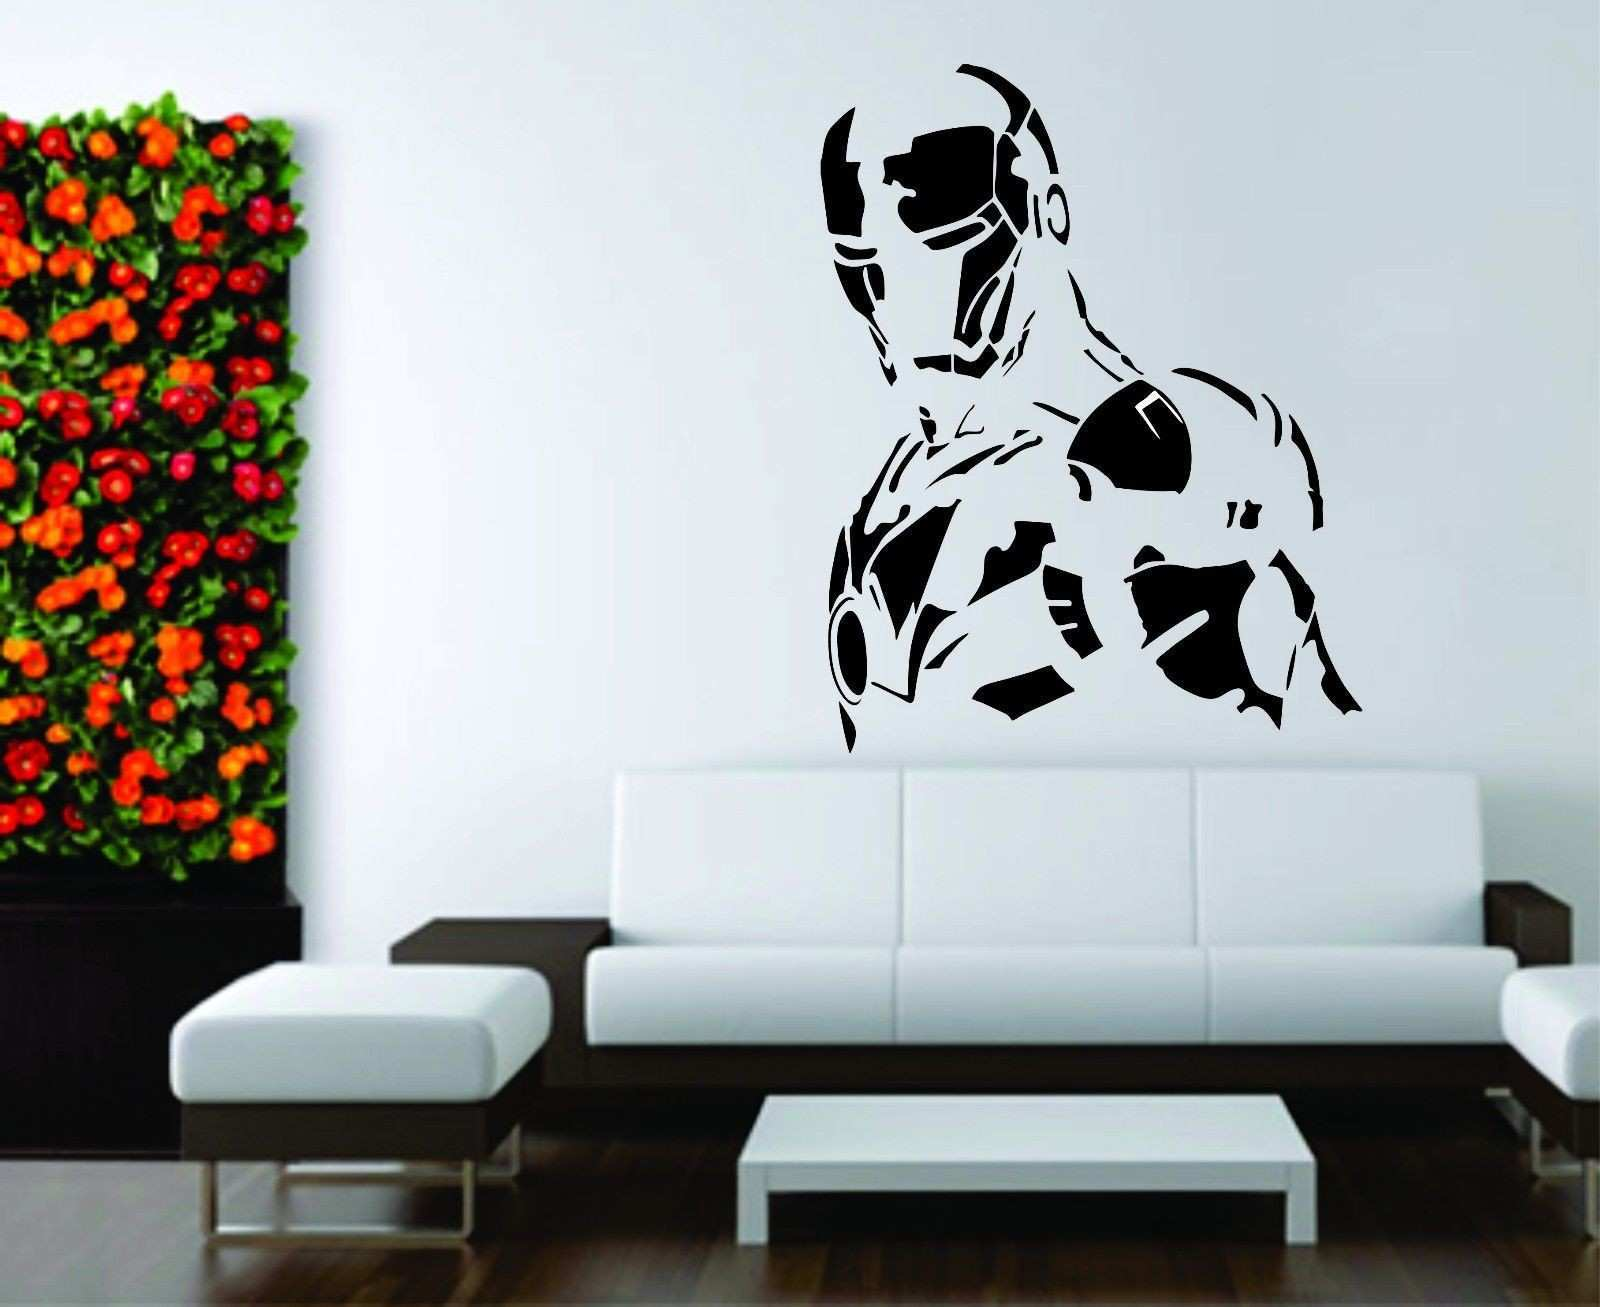 Custom Wall Stencils Fresh Superhero Wall Sticker Batman Movie